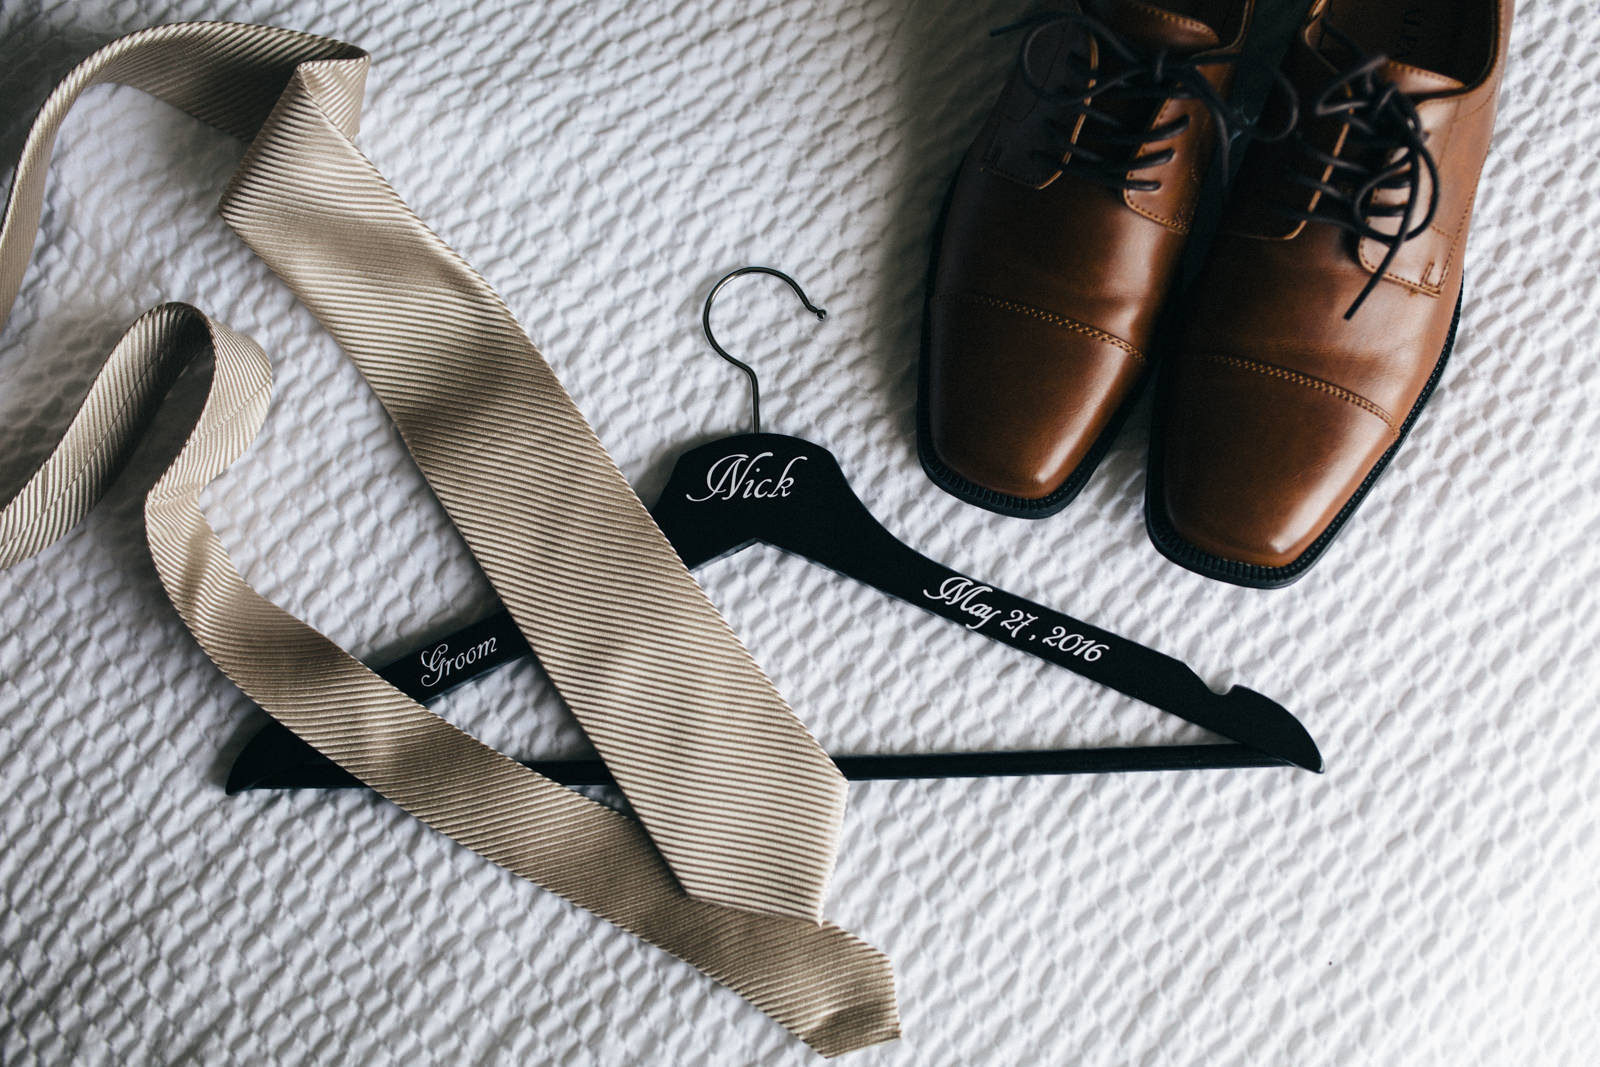 Groom's tie, suit hanger and shoes before wedding.